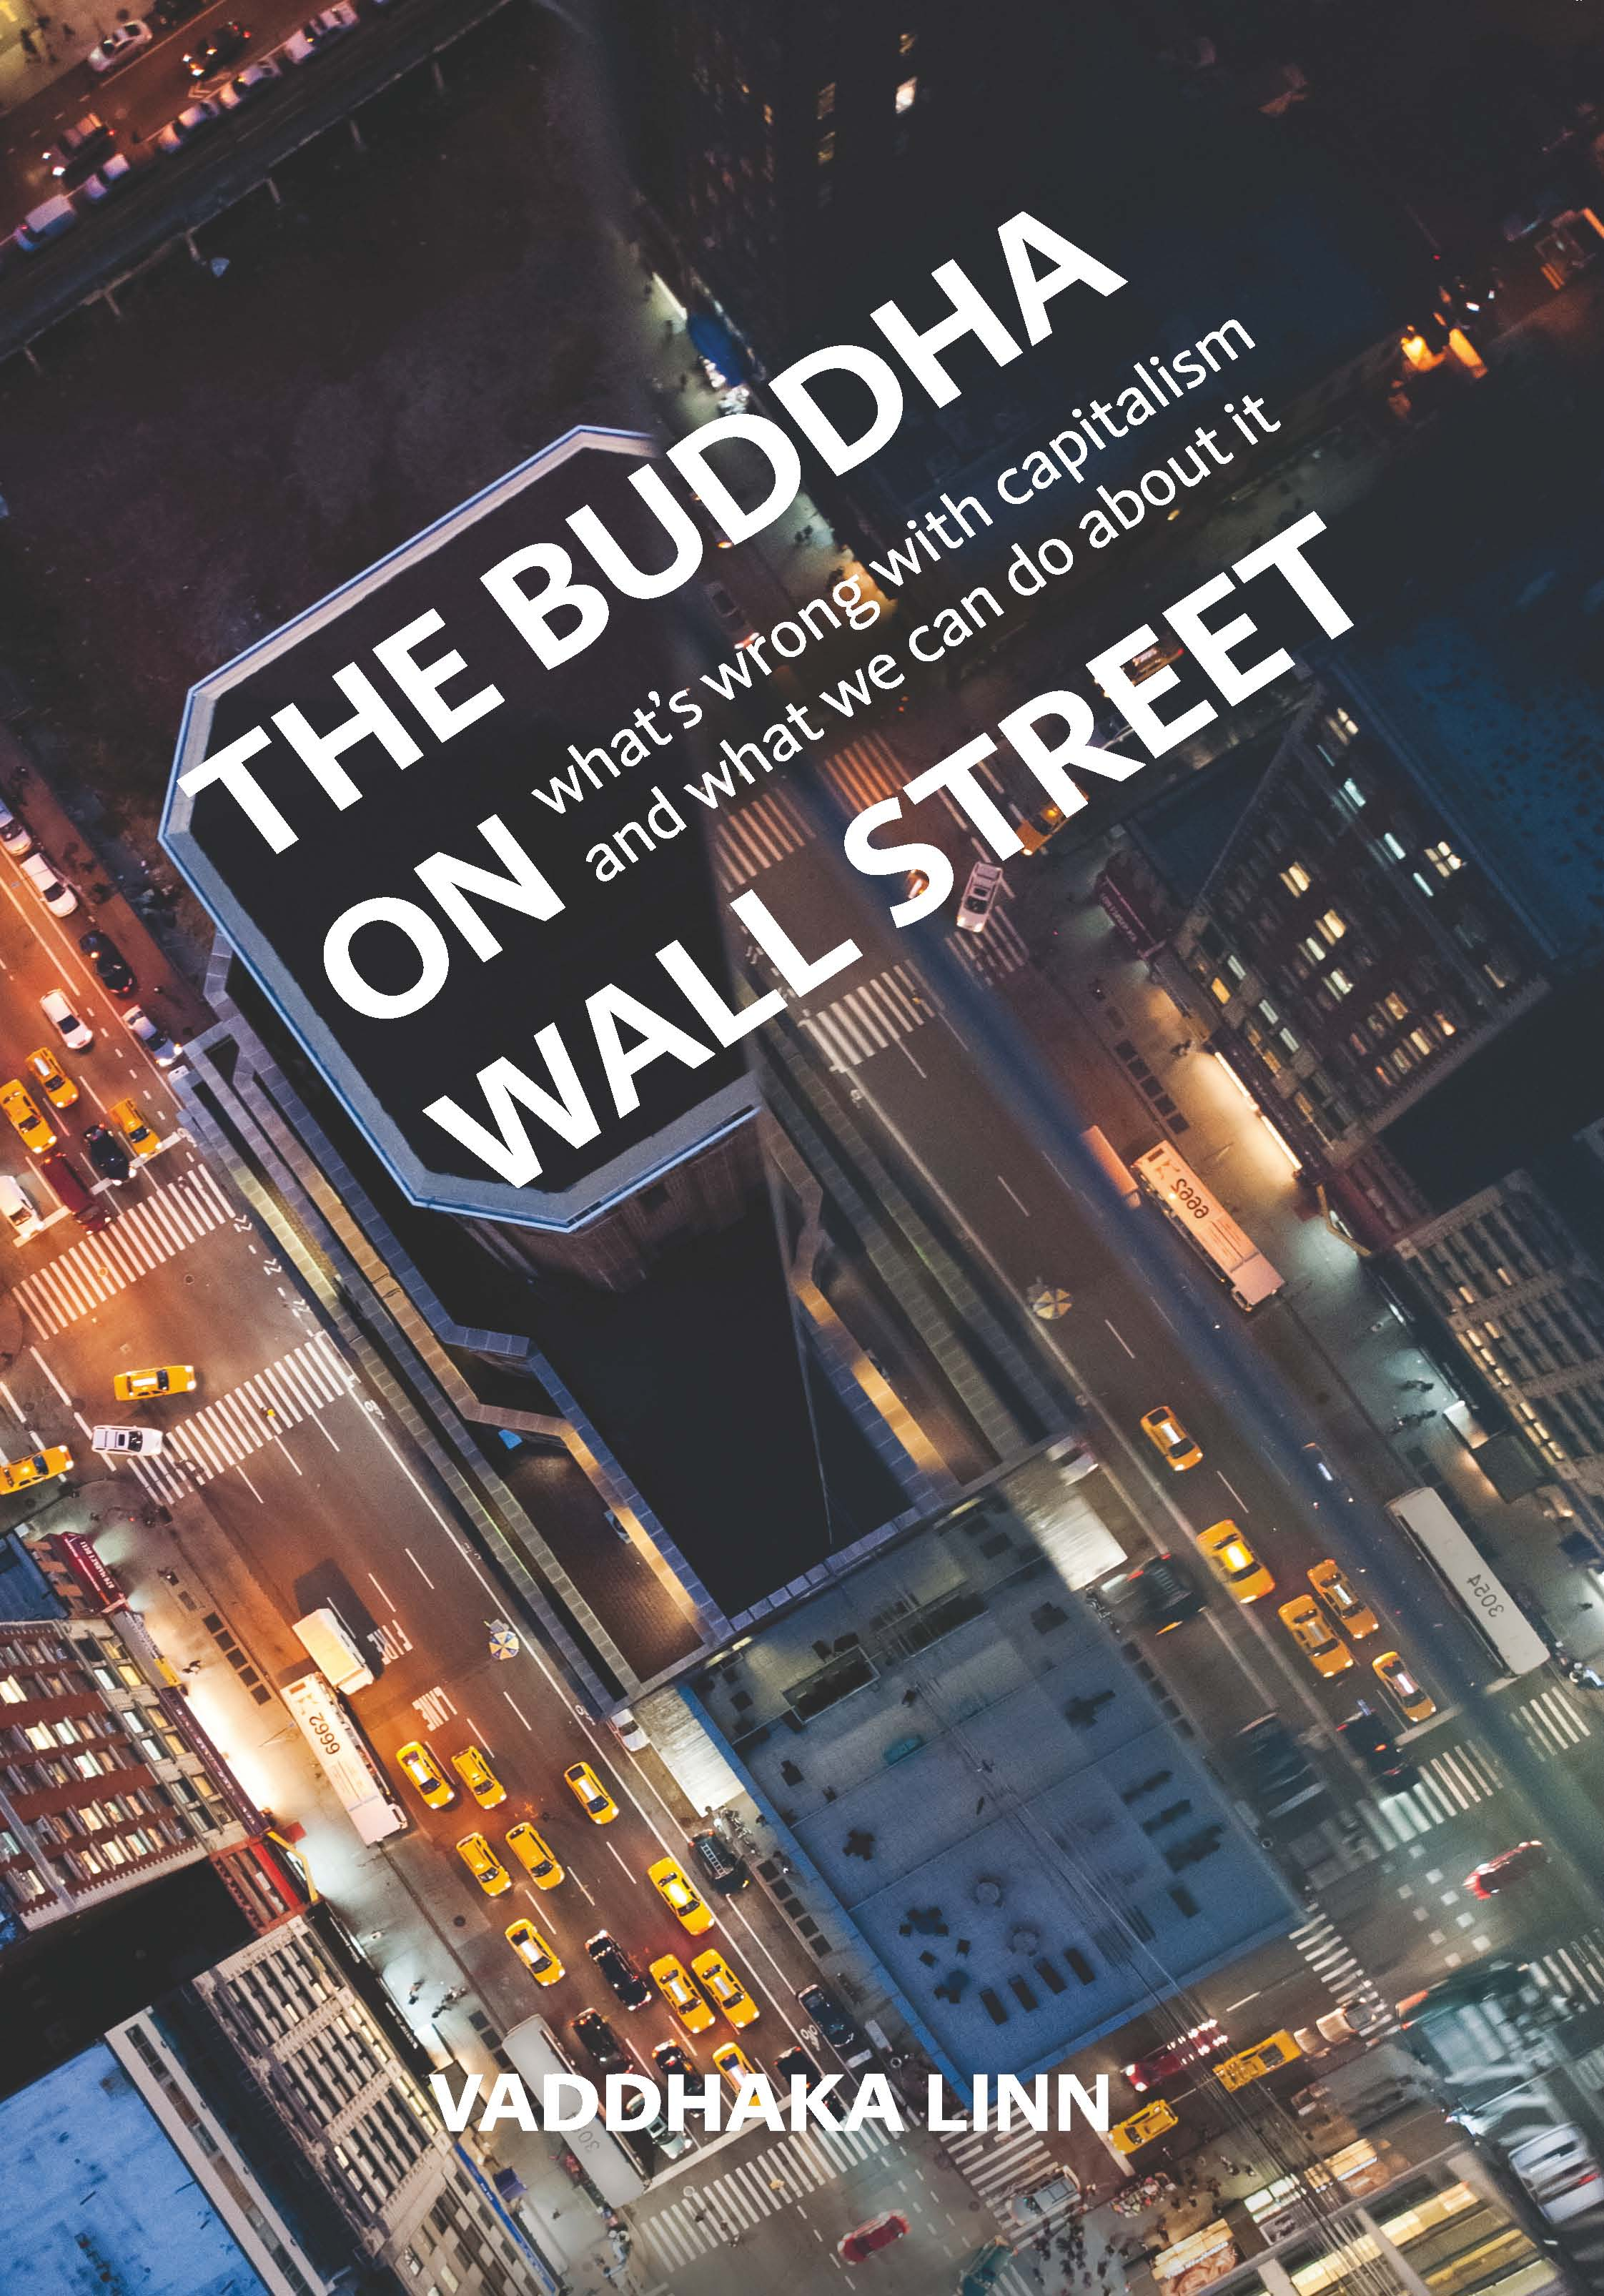 The countdown to the release of The Buddha on Wall Street begins…